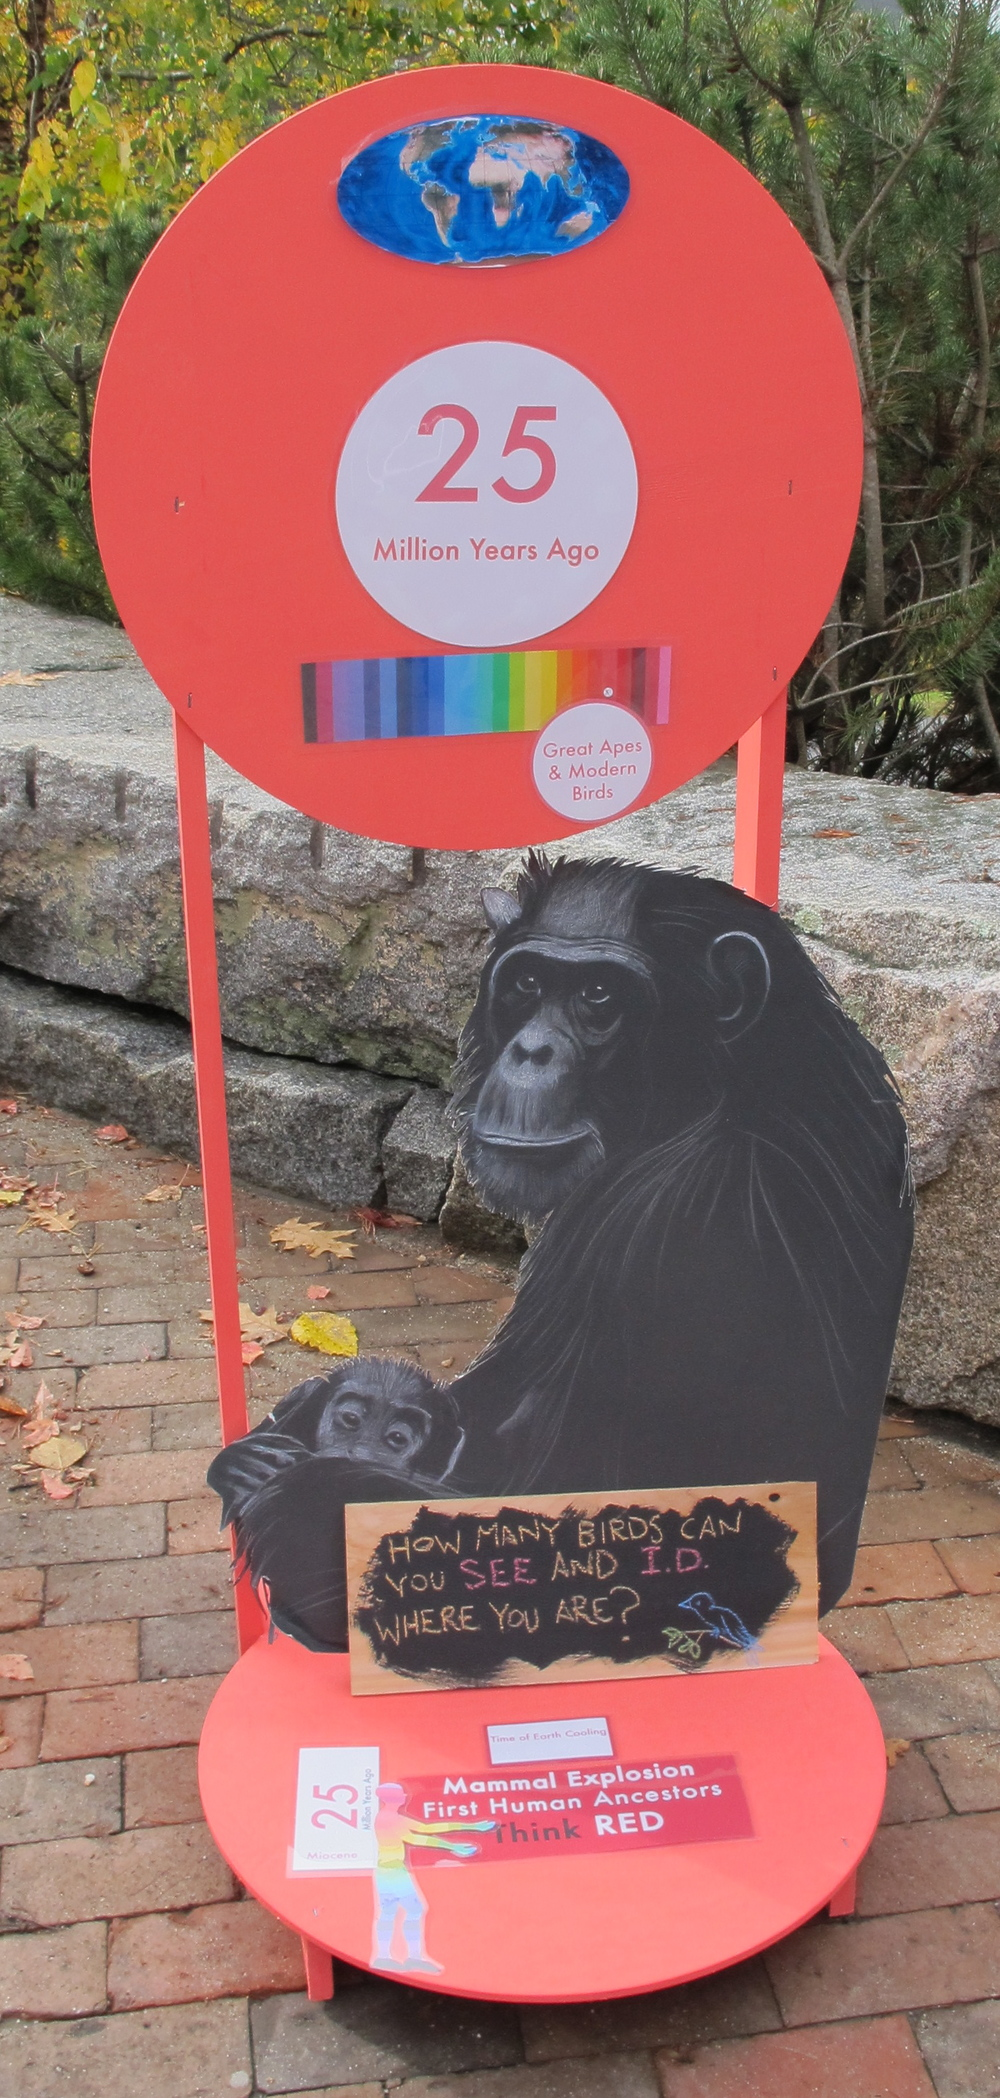 We added one of the chimp illustrations from Jane Goodall Day at the Notebook.